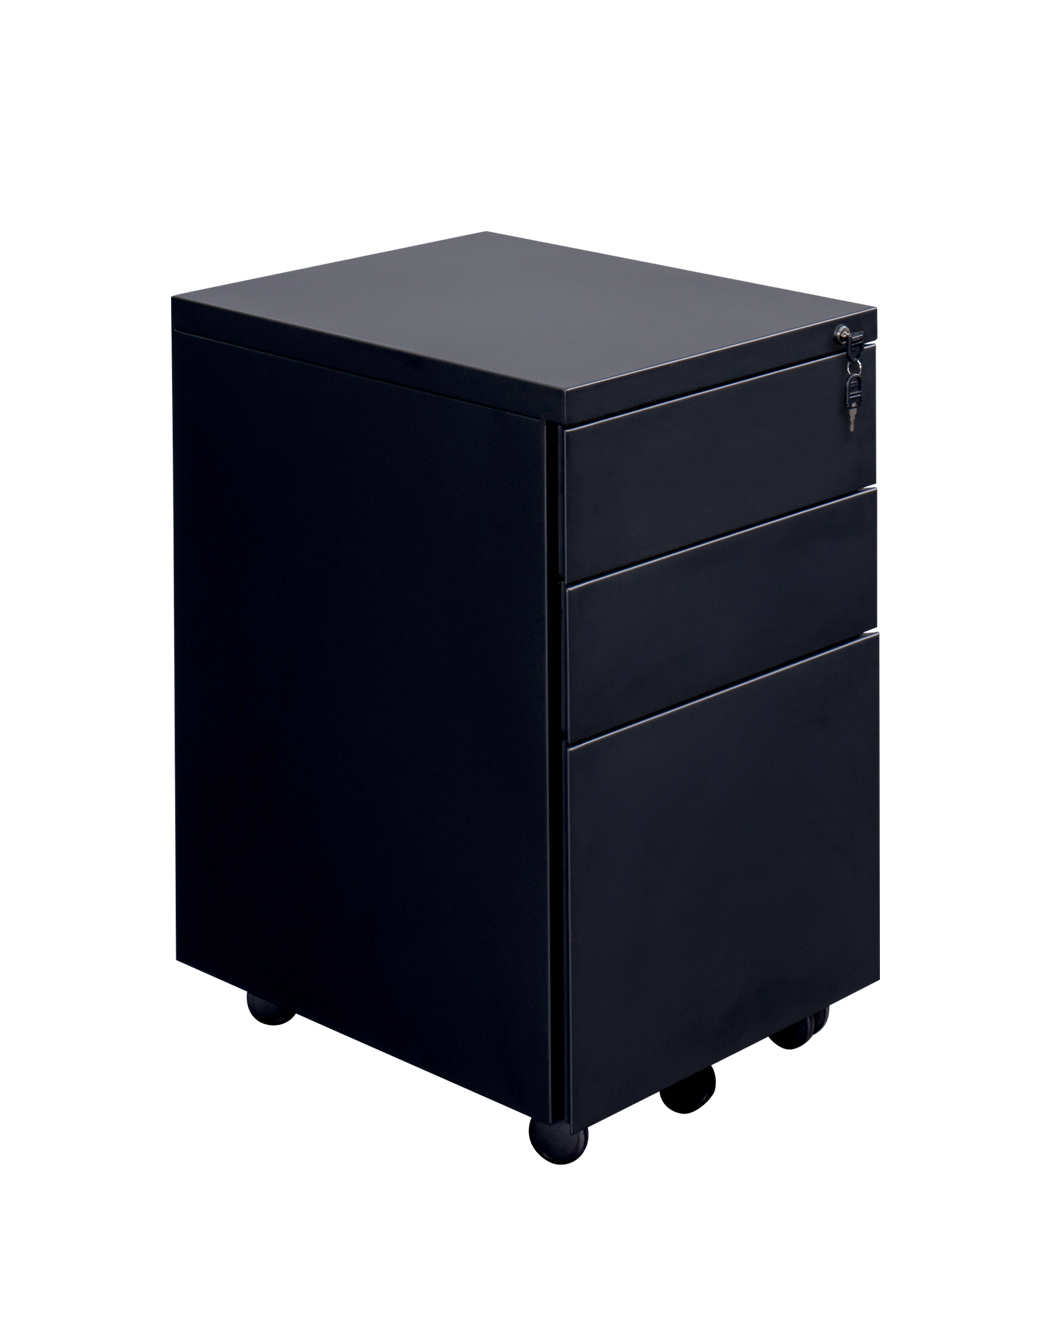 3 Drawer Endurance Metal Under Desk Office Pedestal Black